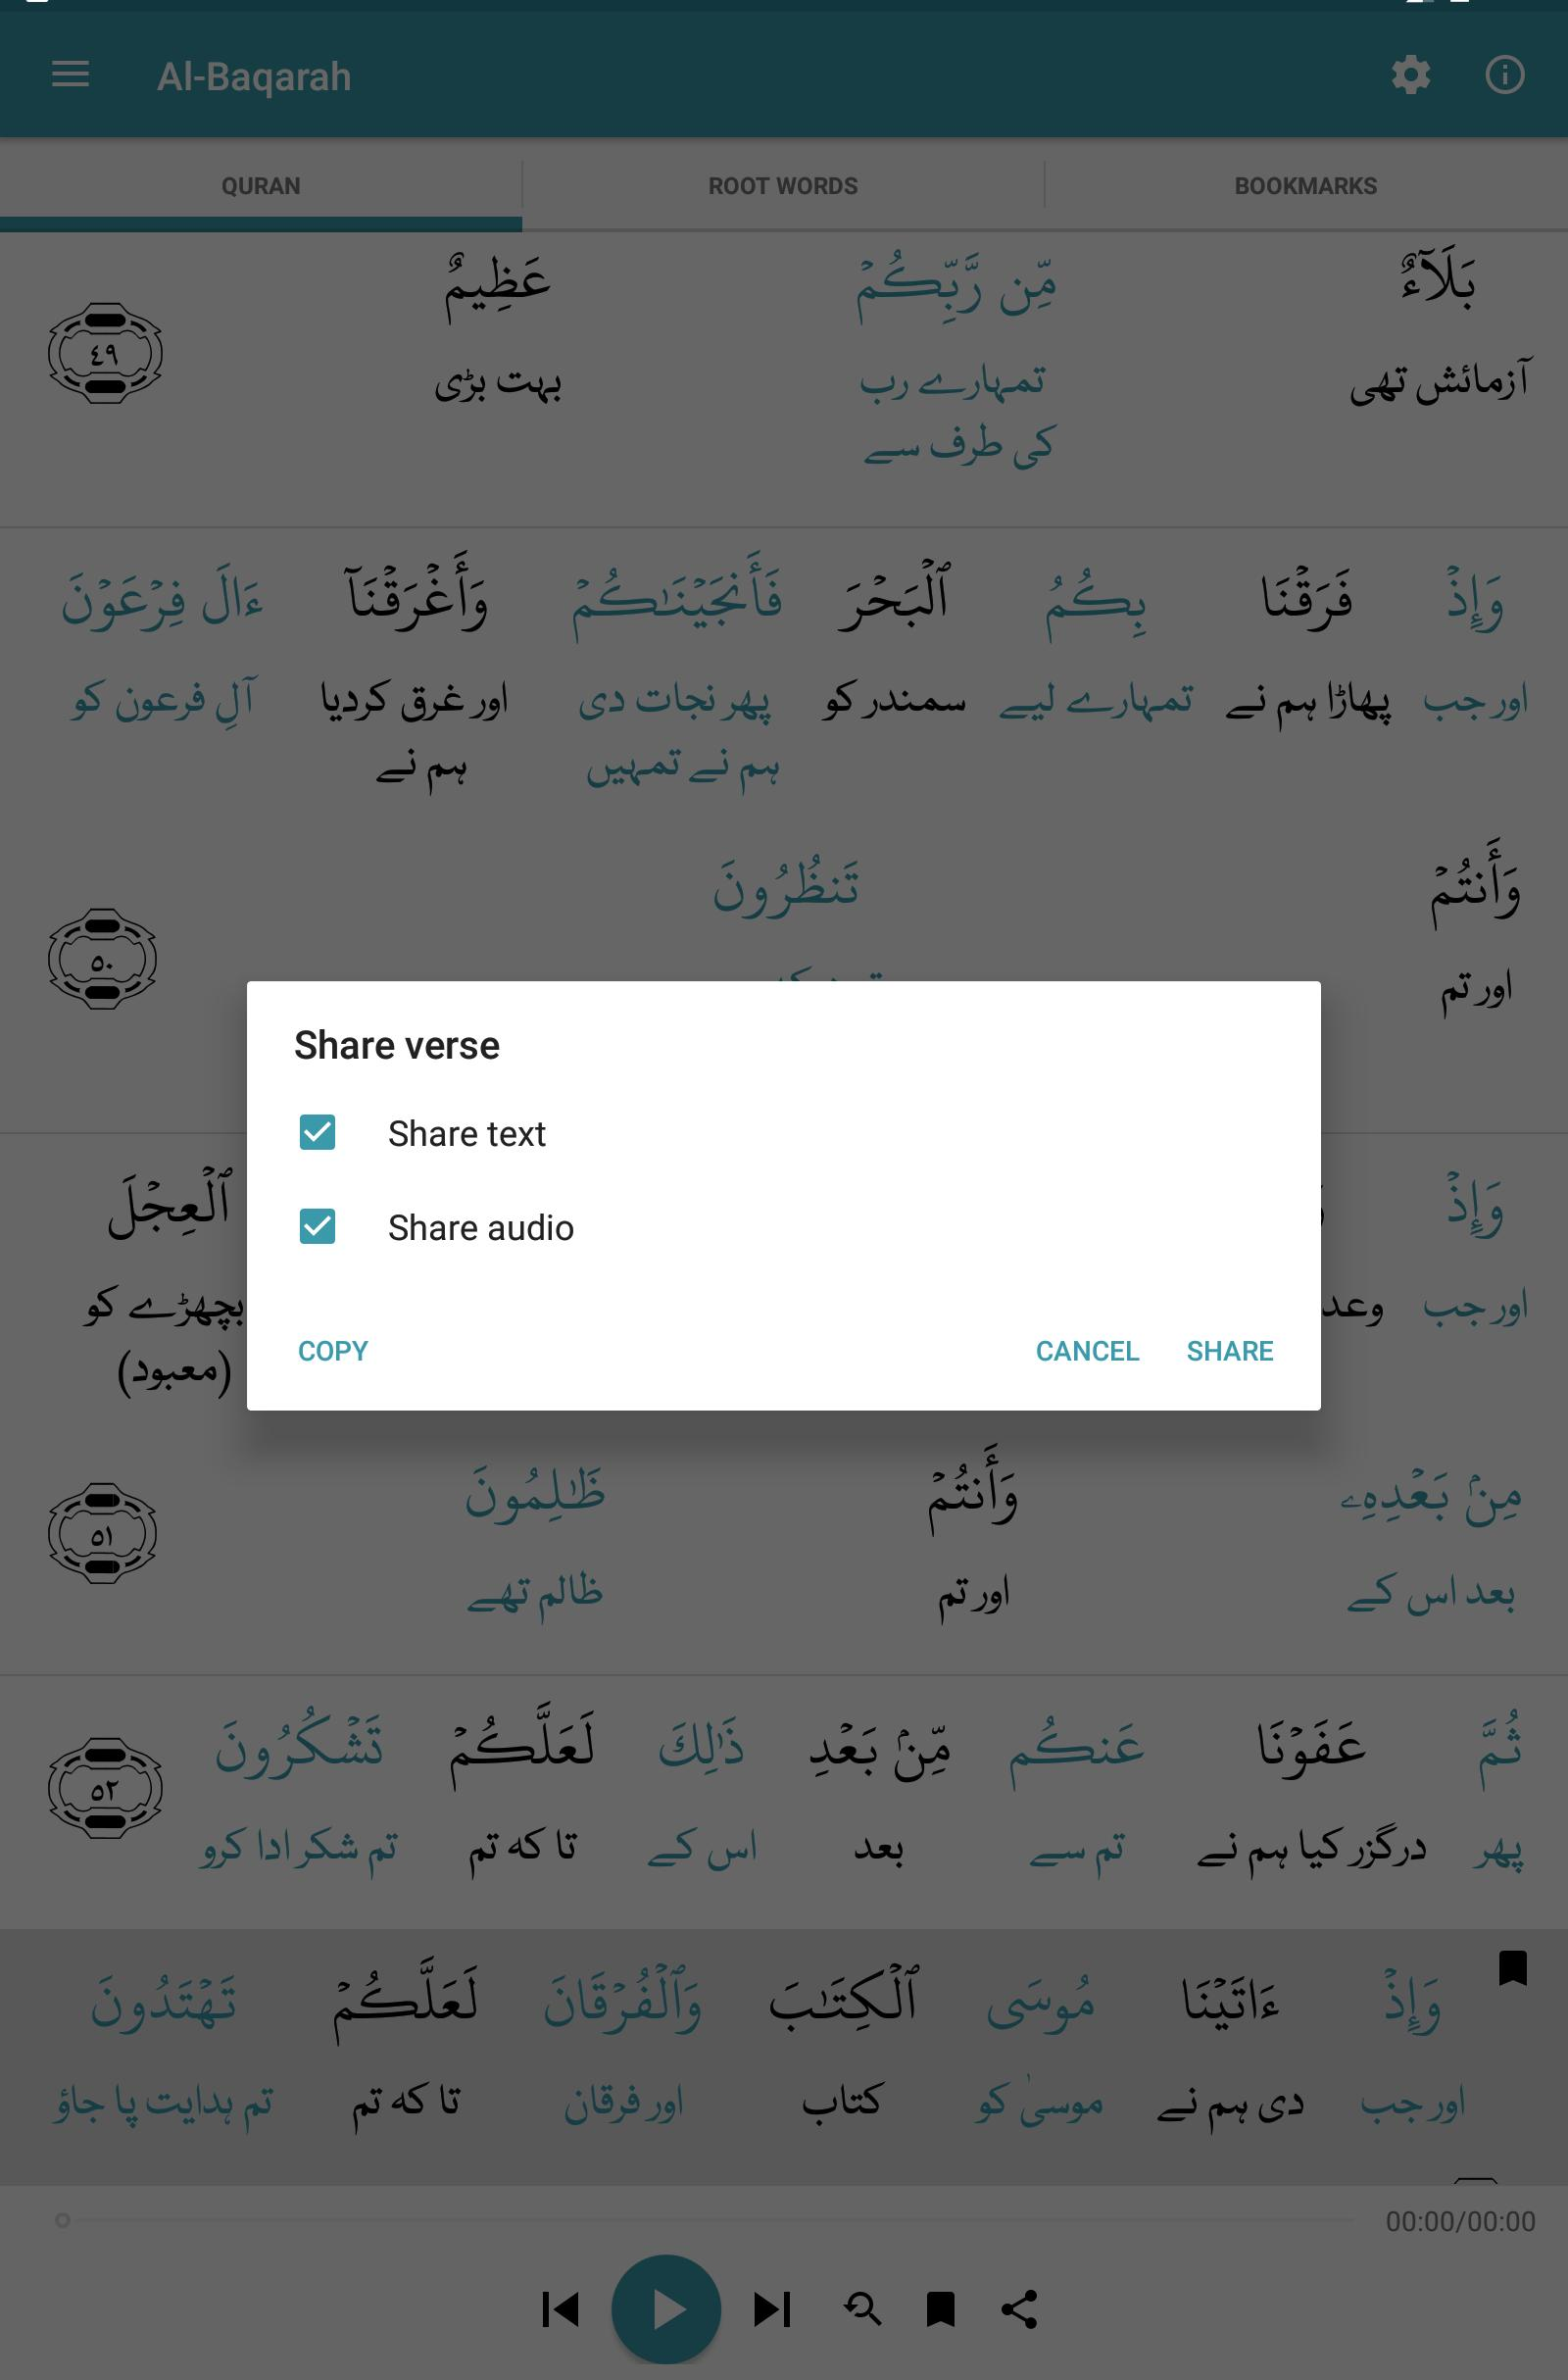 Learn Quran for Android - APK Download